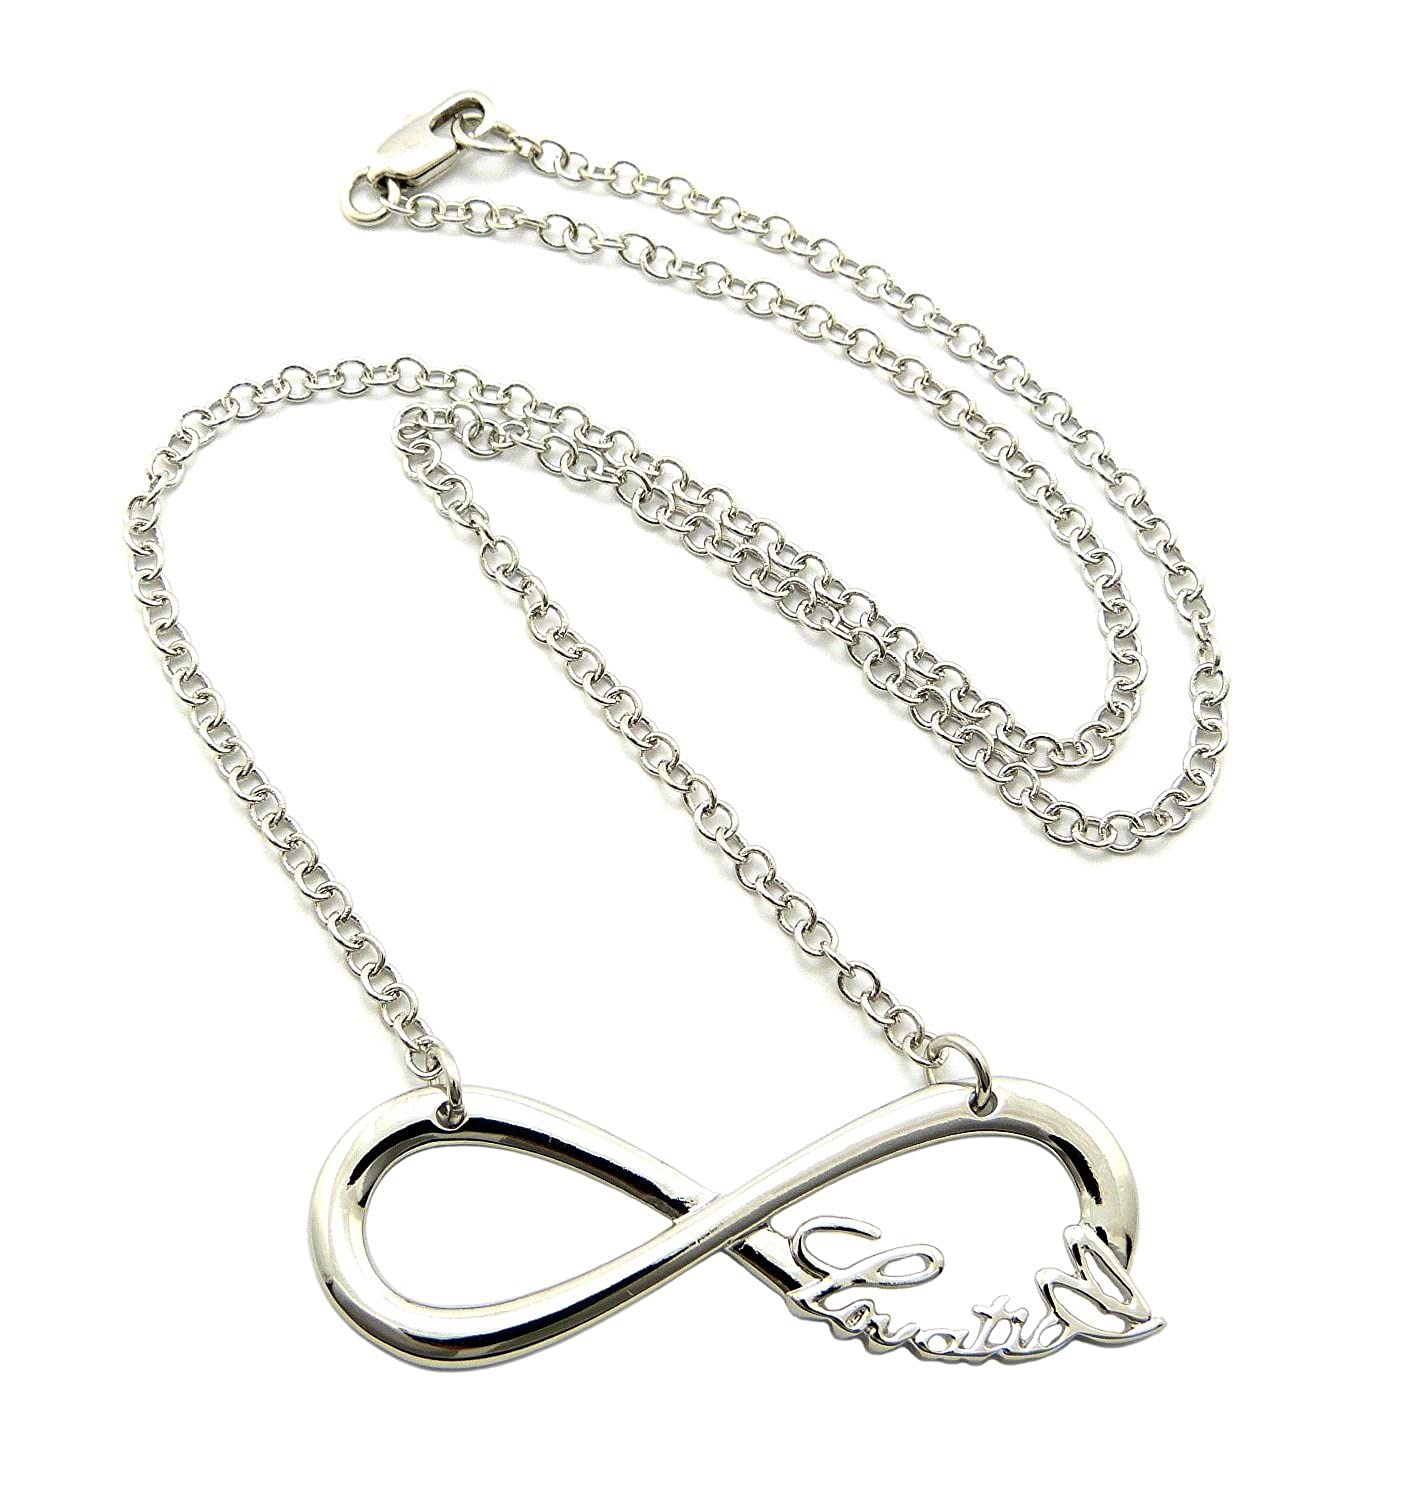 tiffany infinitypendant chain a infinity ed pendant sterling in sign pendants jewelry co necklace silver on necklaces